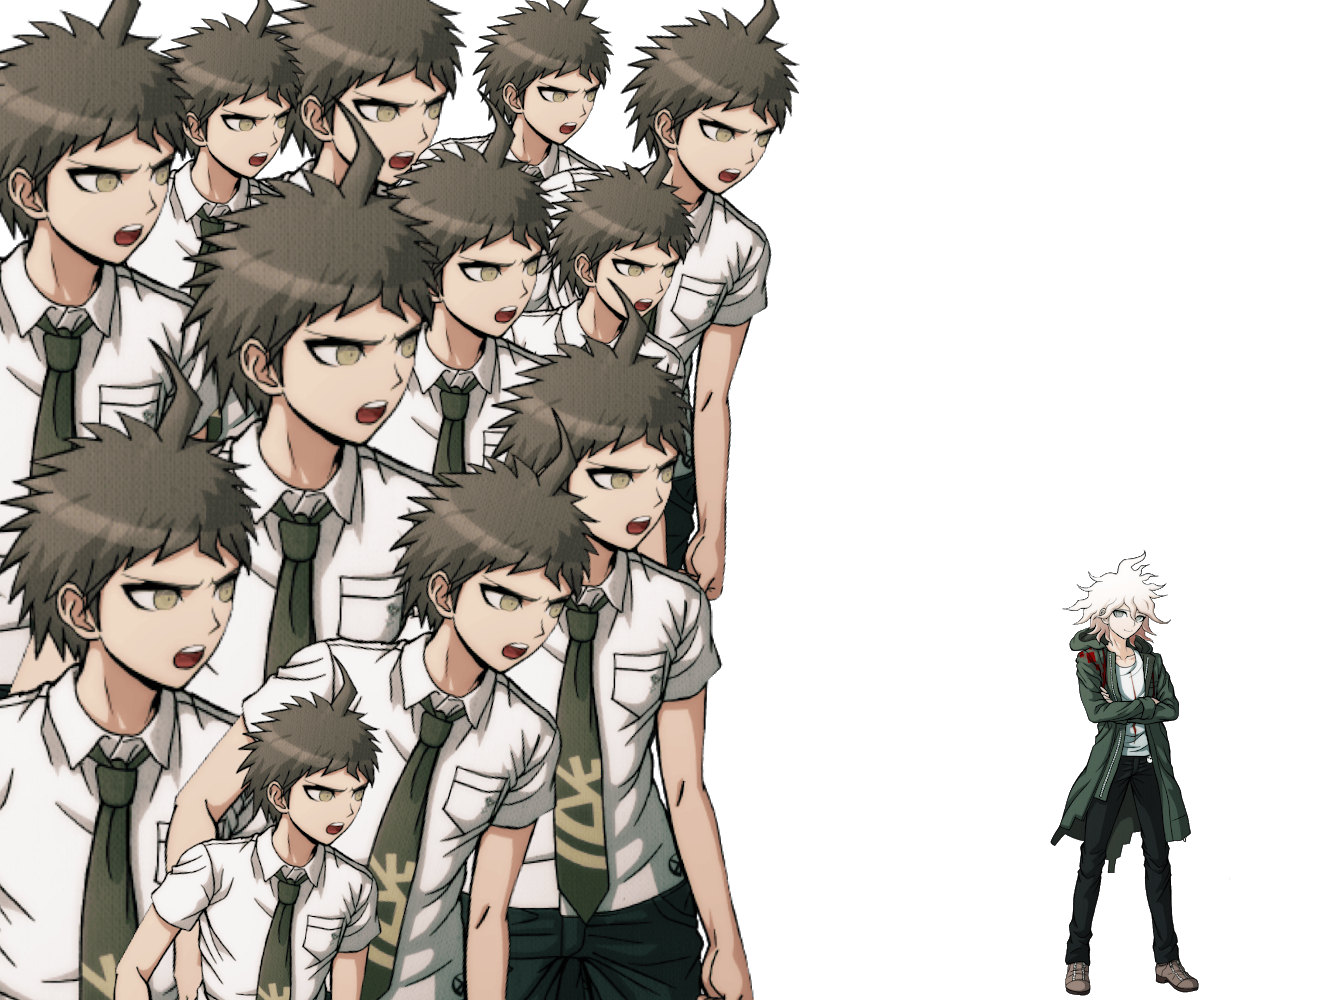 A reaction image for you and an ipad wallpaper danganronpa 1333x1000